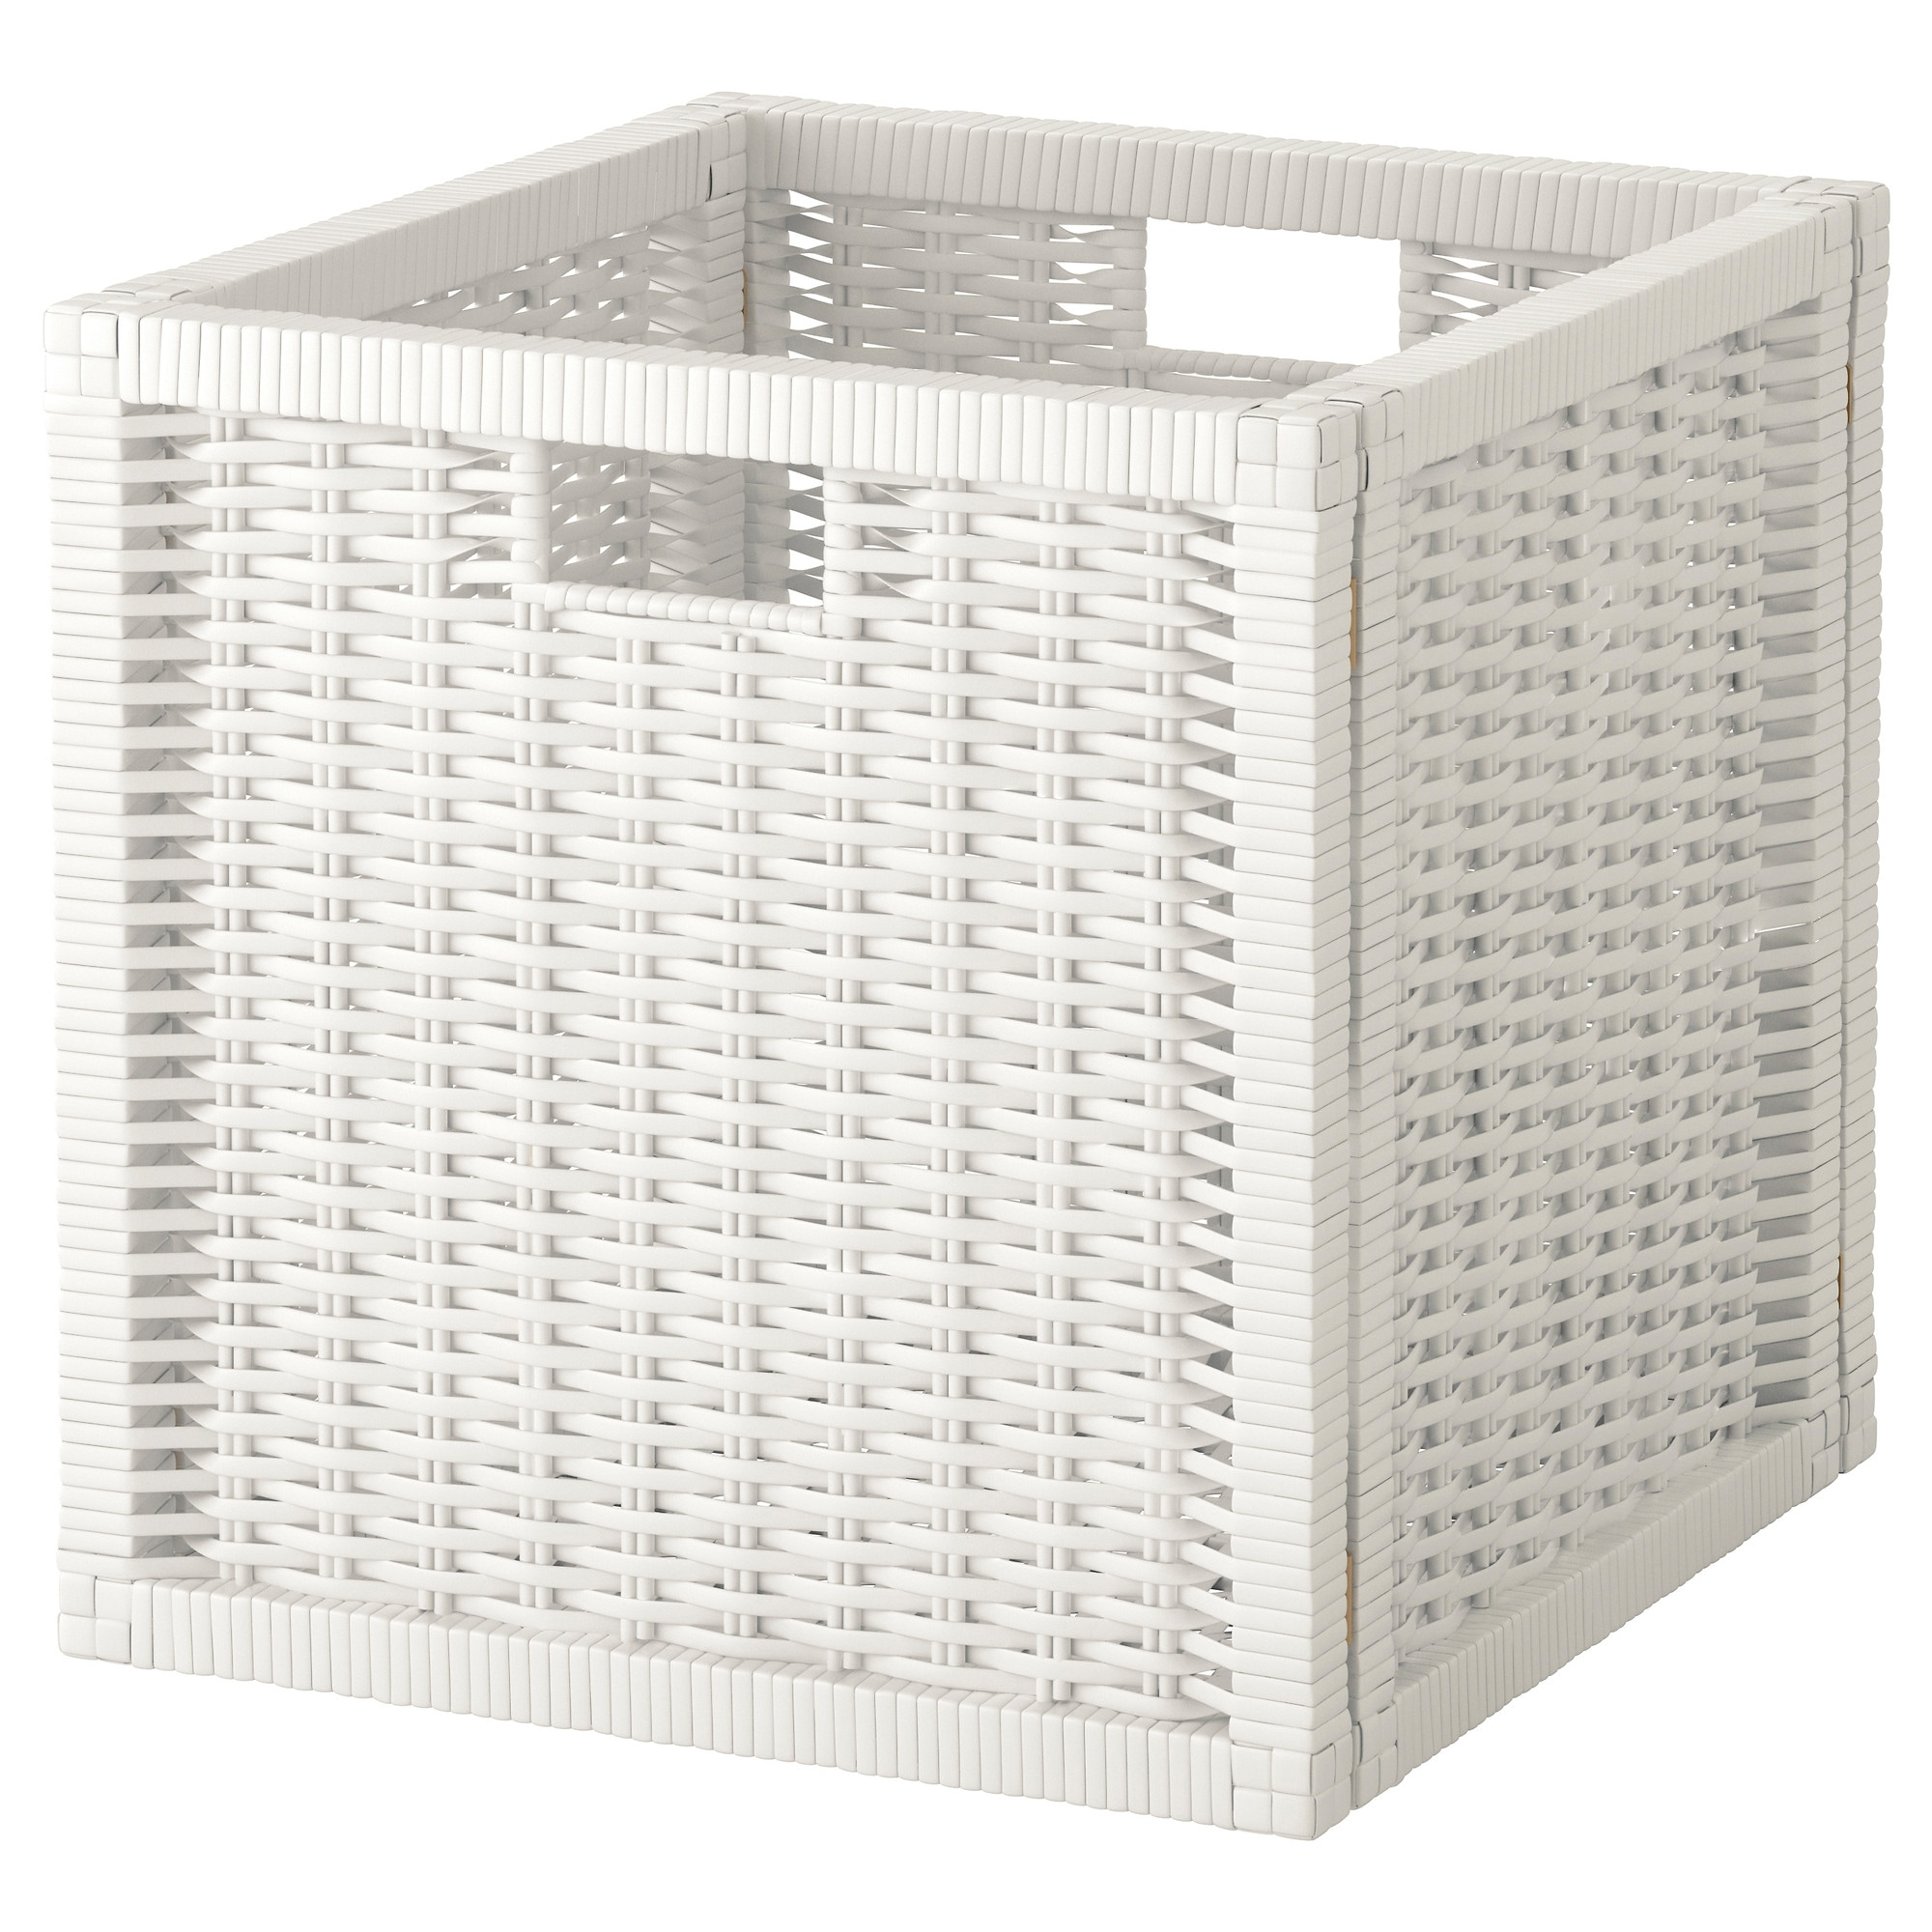 branas basket white width  a   quot depth  a   quot height: white storage unit wicker